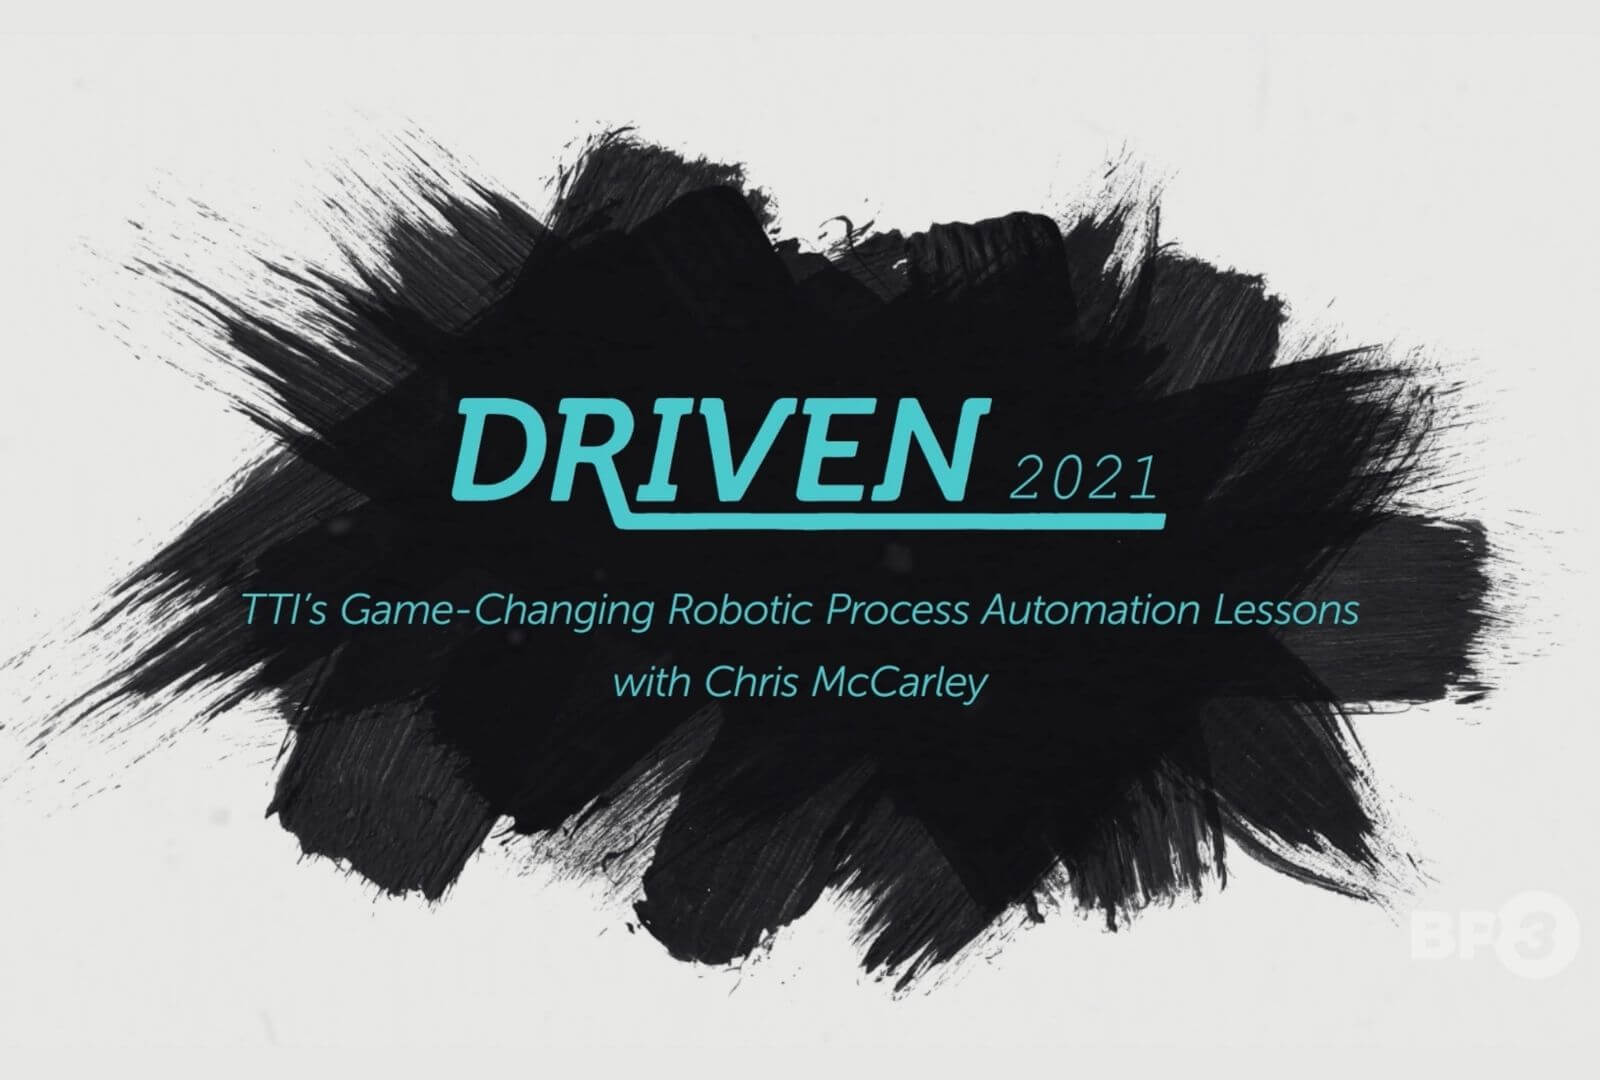 We had so much fun on September 14th talking with TTI's Chris McCarley about their use of Robotic Process Automation (RPA) during the pandemic.